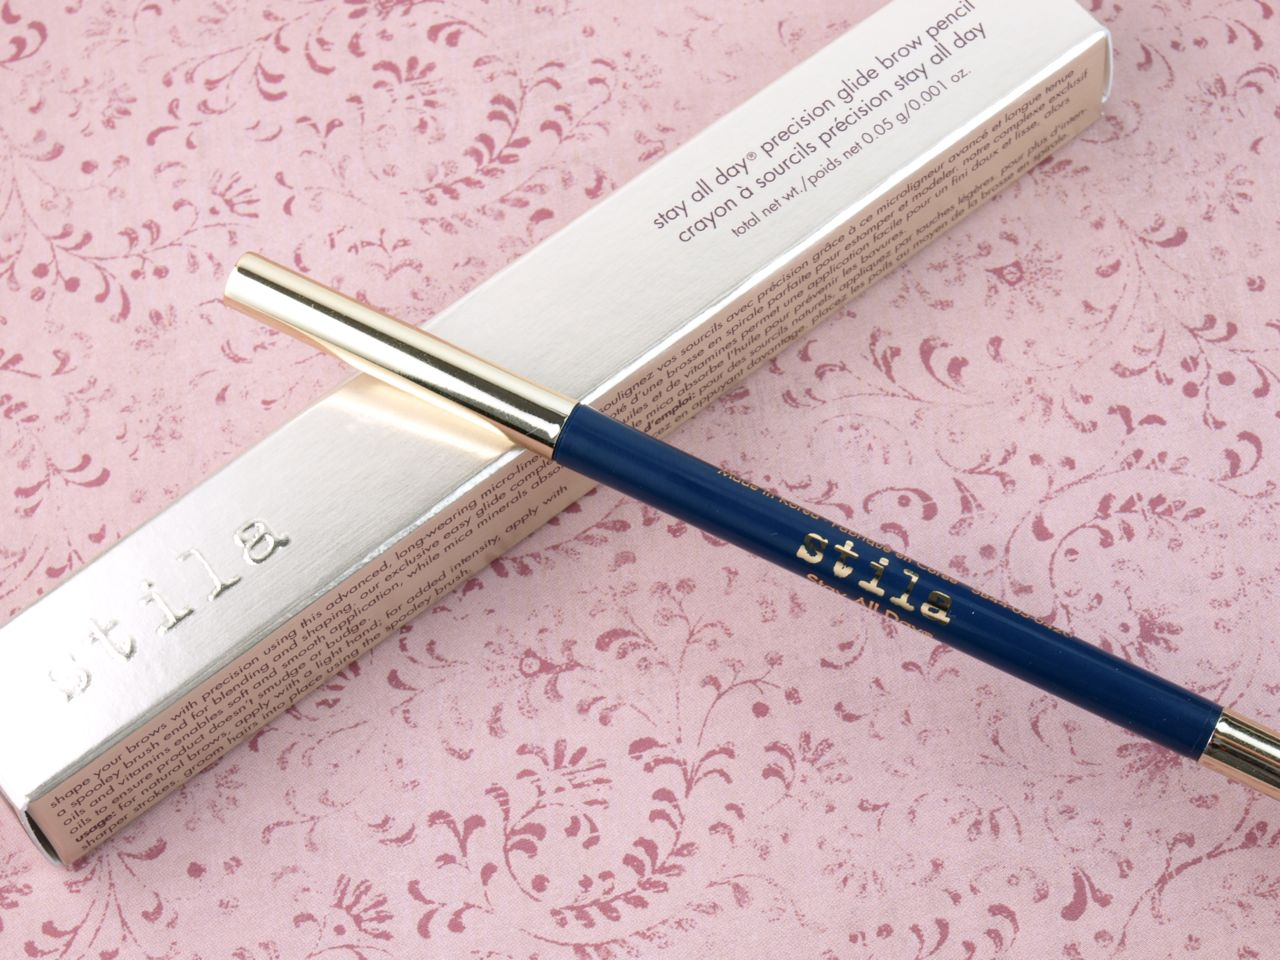 Stila Stay All Day Precision Glide Brow Pencil And Brow Gel In